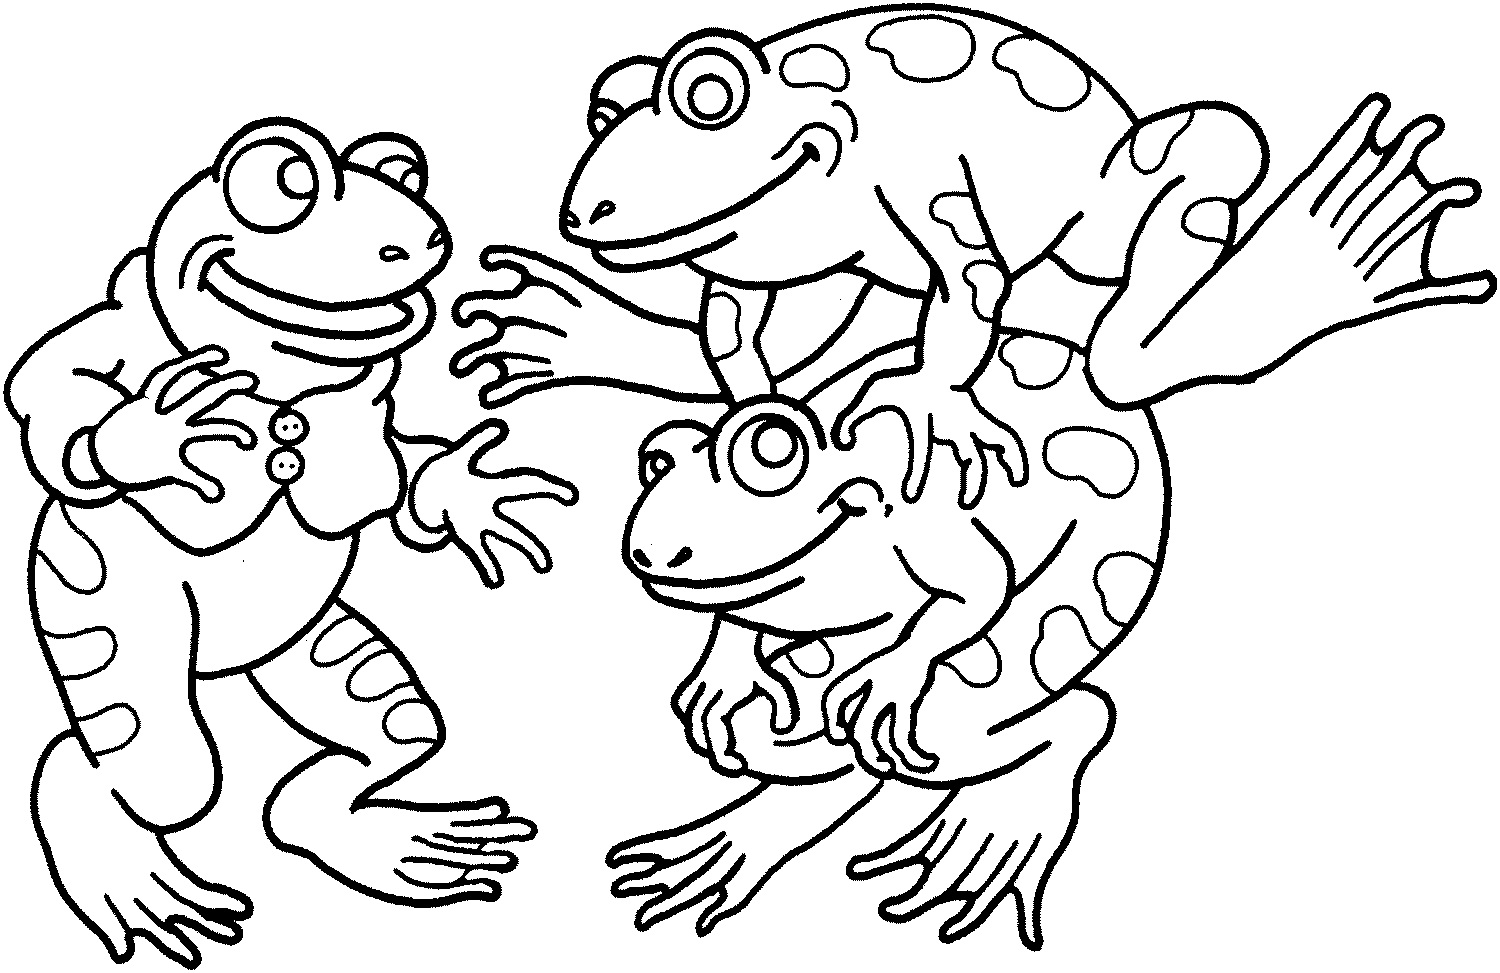 1500x973 Warm Frog Coloring Pages Good In Free Book